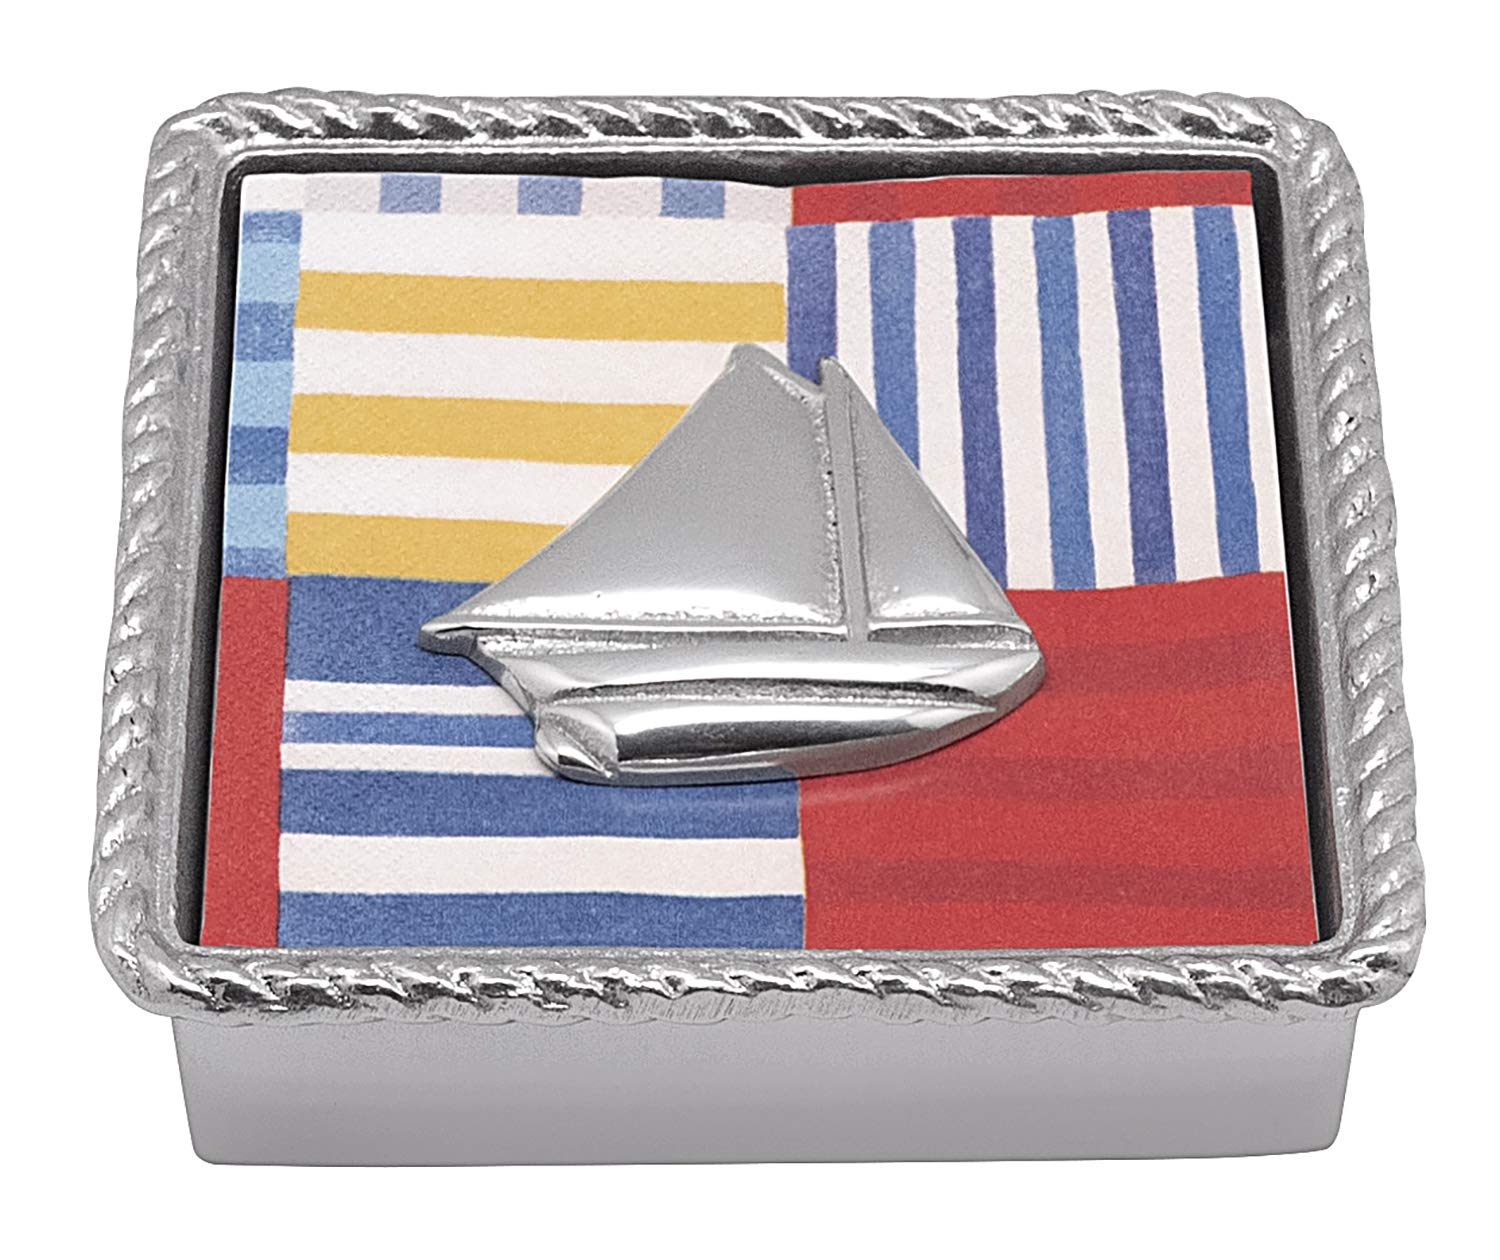 Sailboat Twist Napkin Box by MARIPOSA